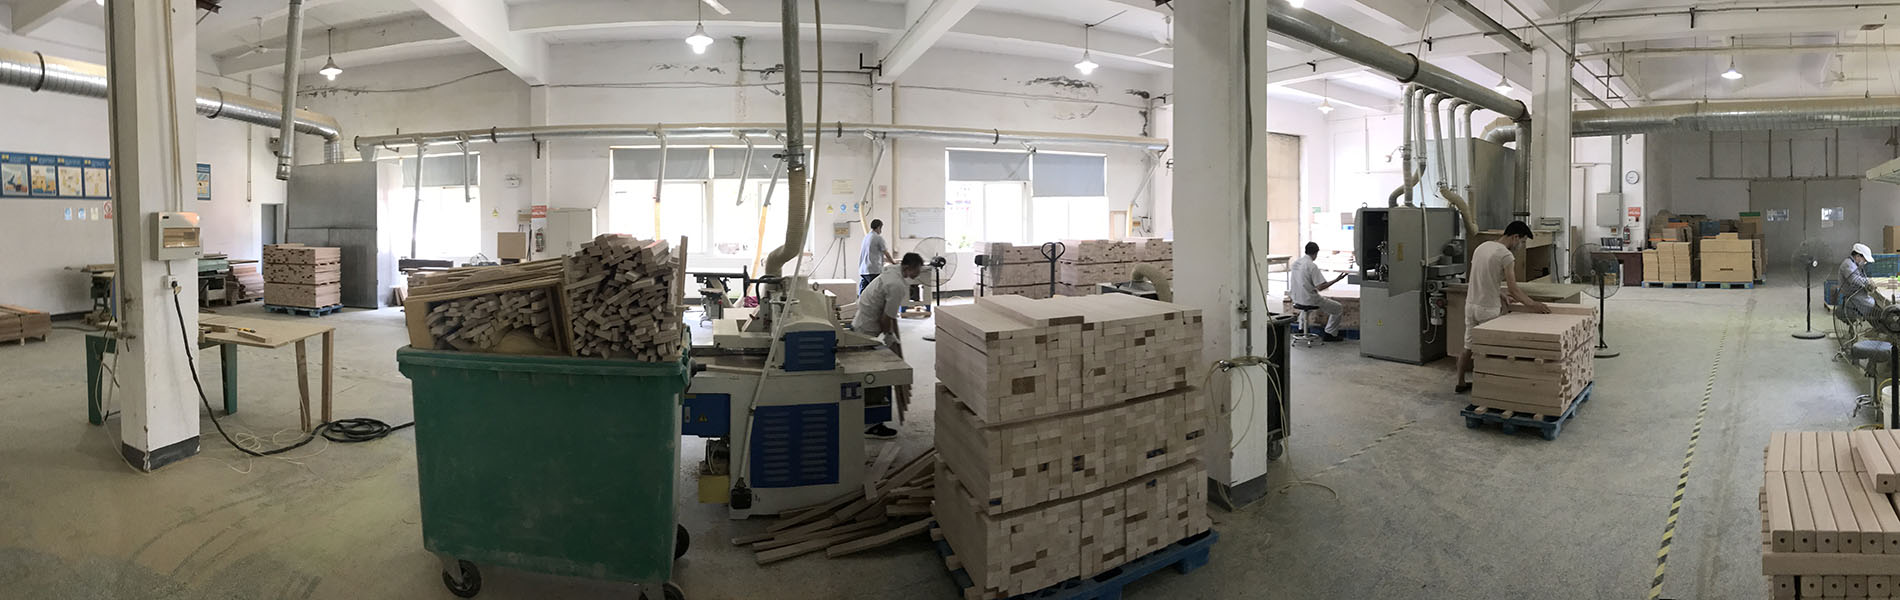 this image shows the factory of IKC in China